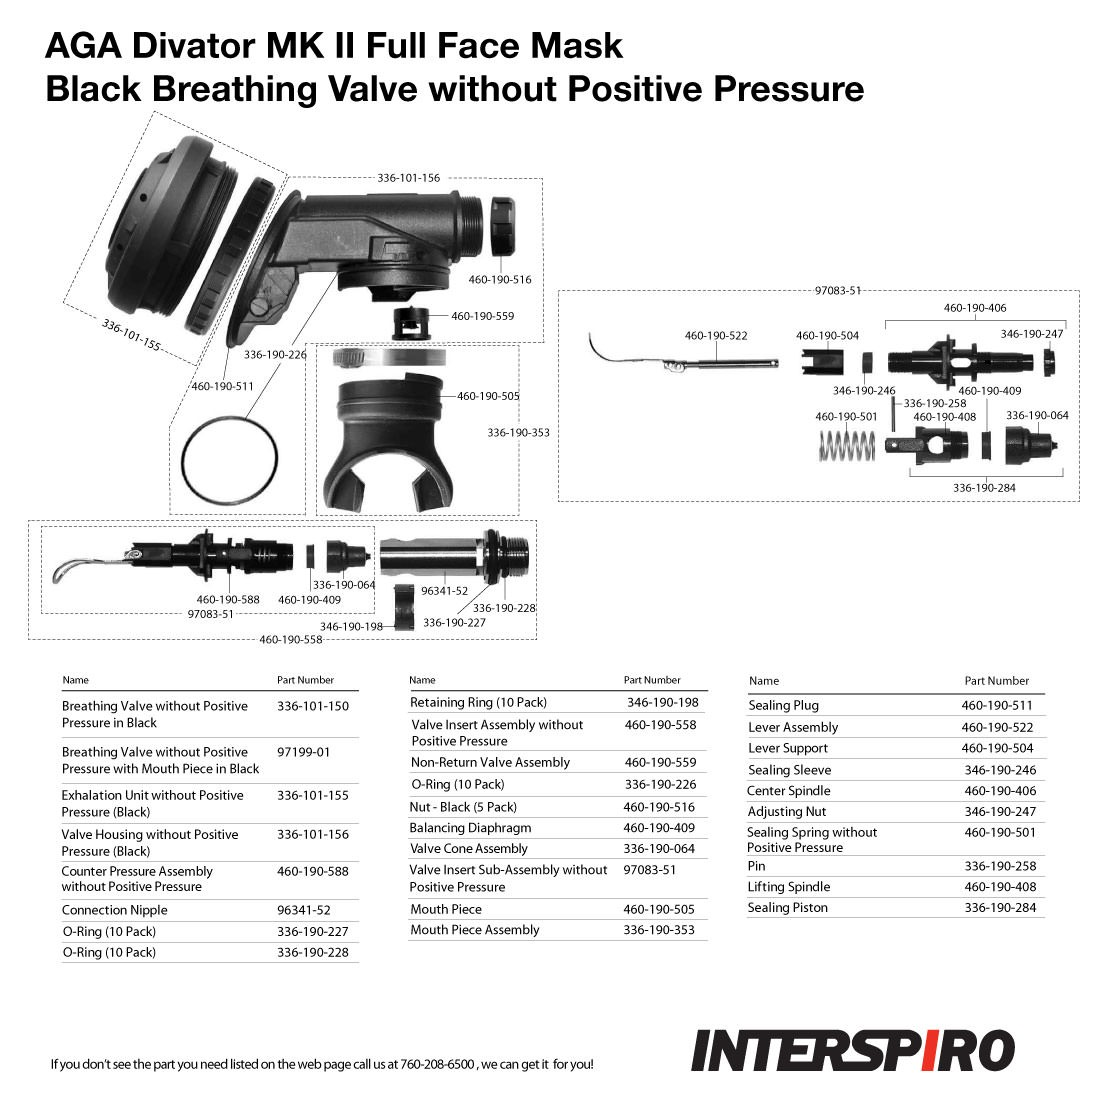 Interspiro AGA Divator MK II Full Face Mask with Demand Regulator - Silicone - Black - Breathing Valve